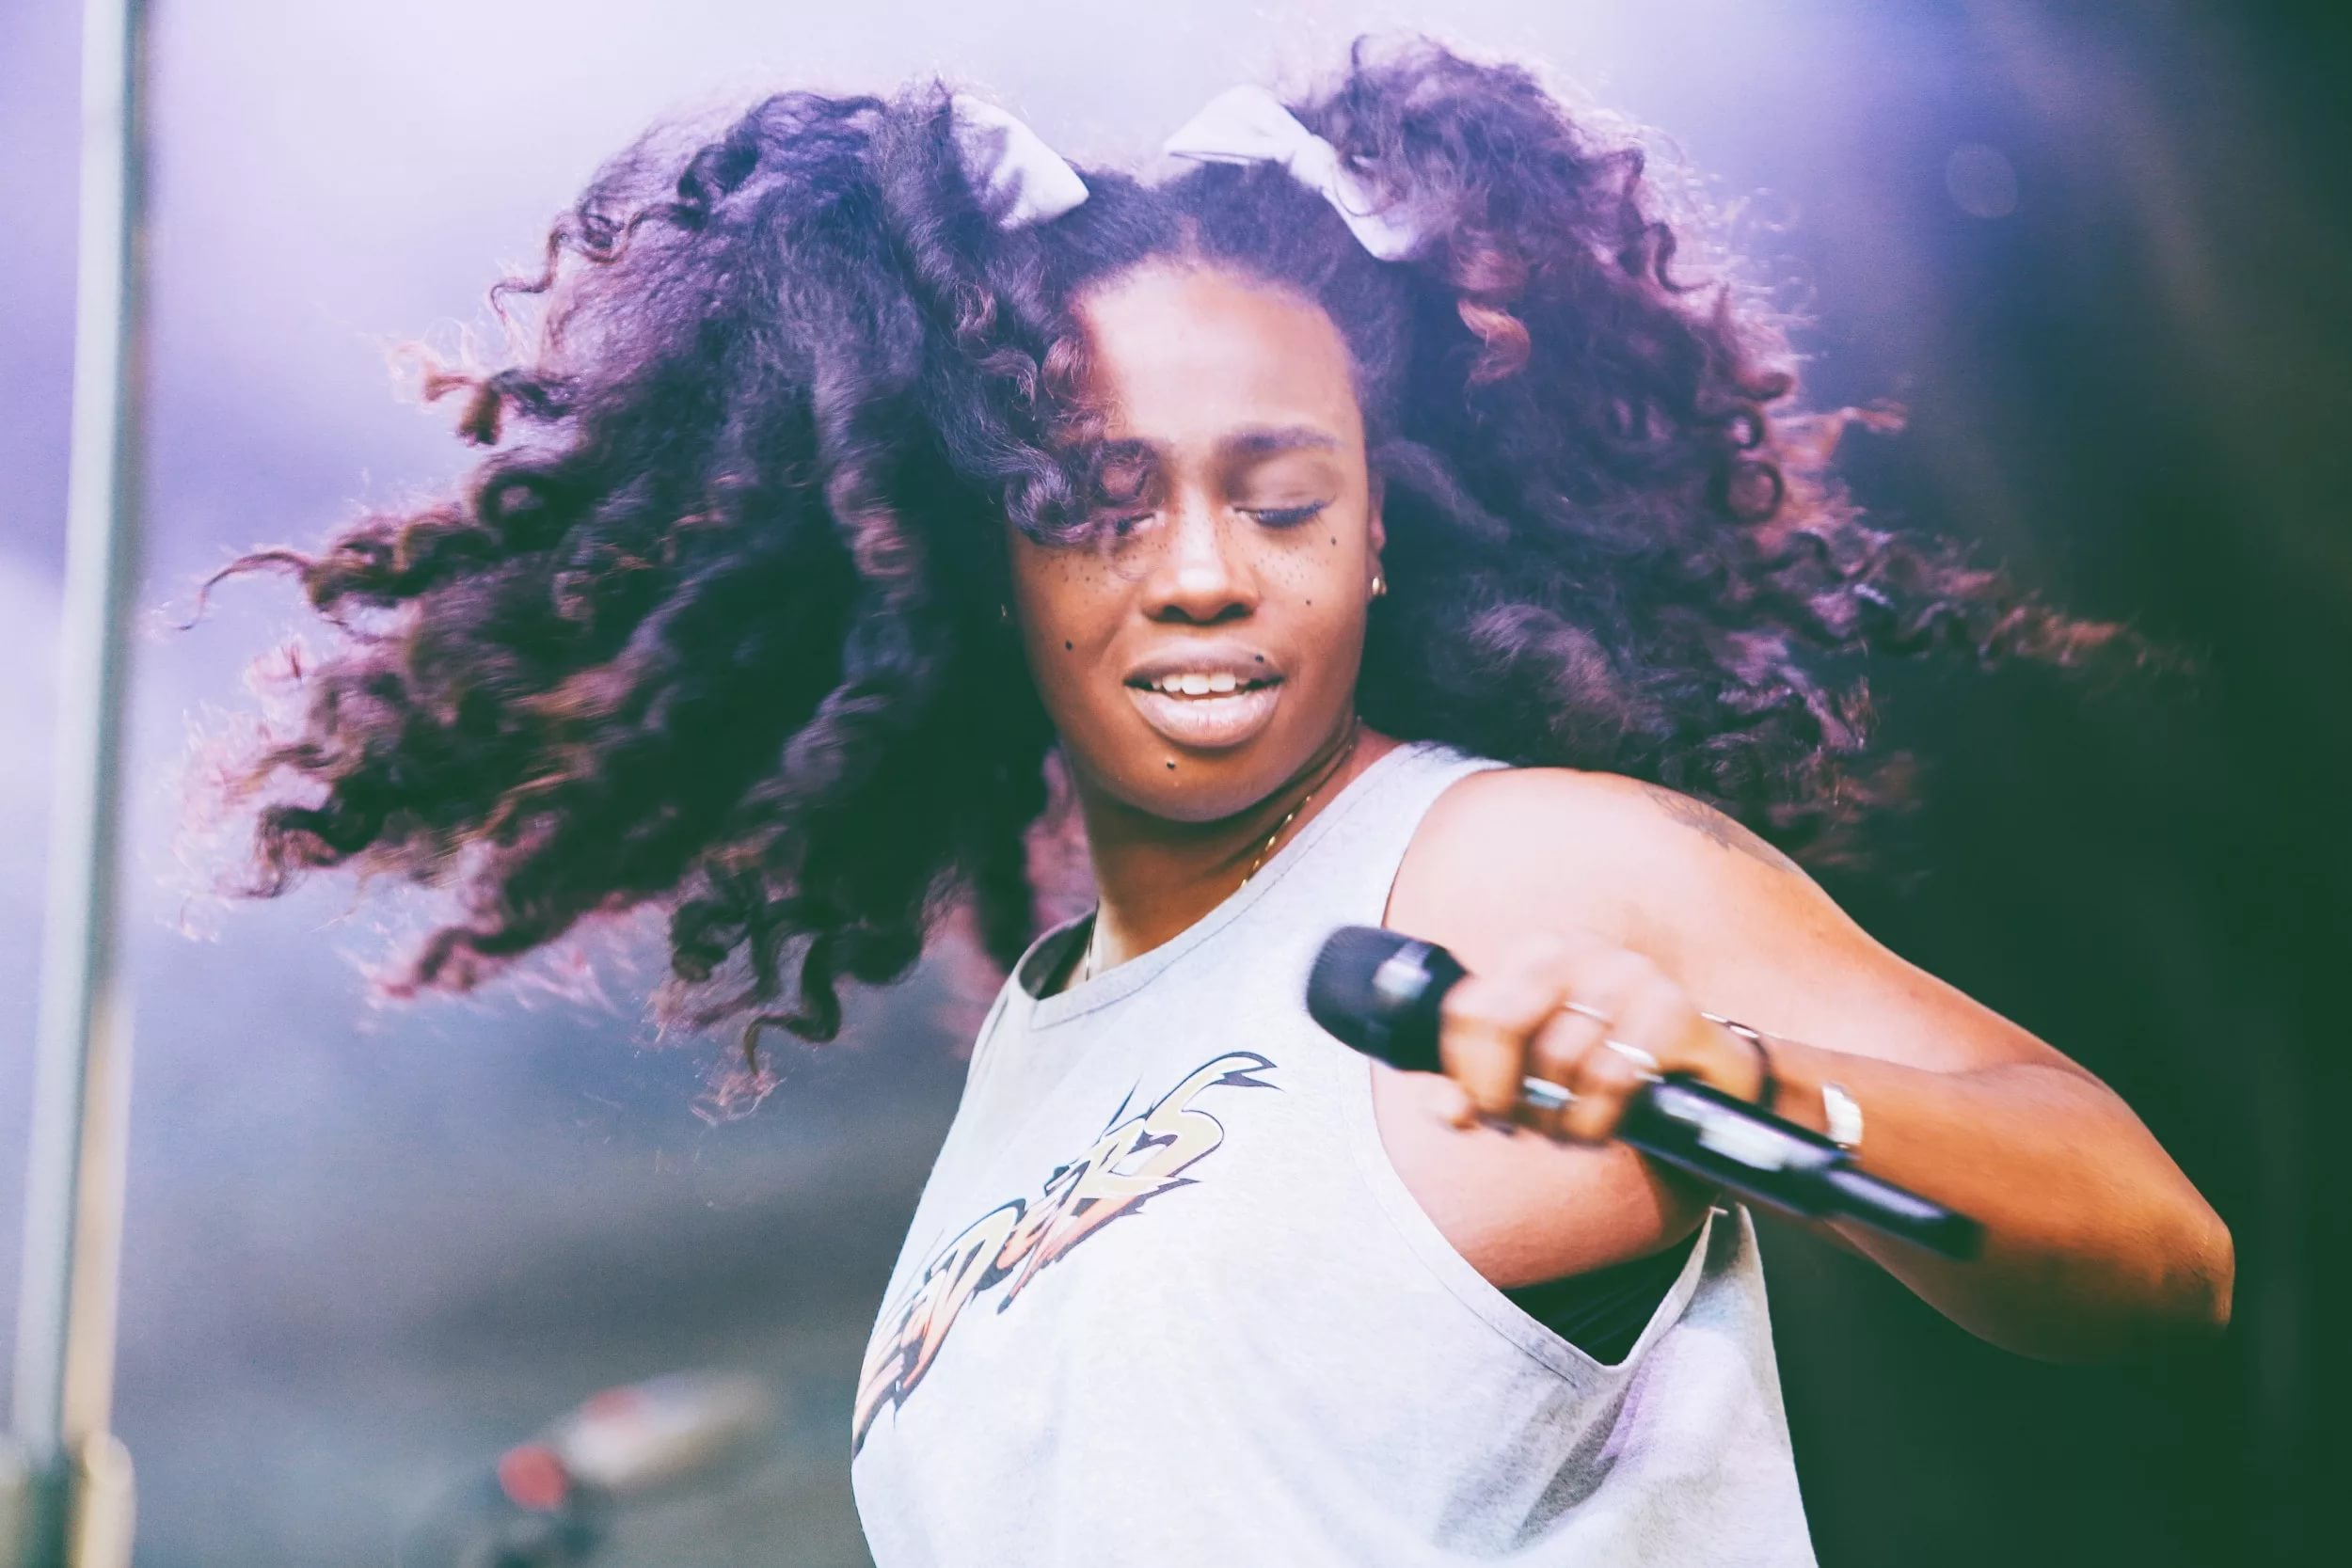 sza performing wallpaper background 64108